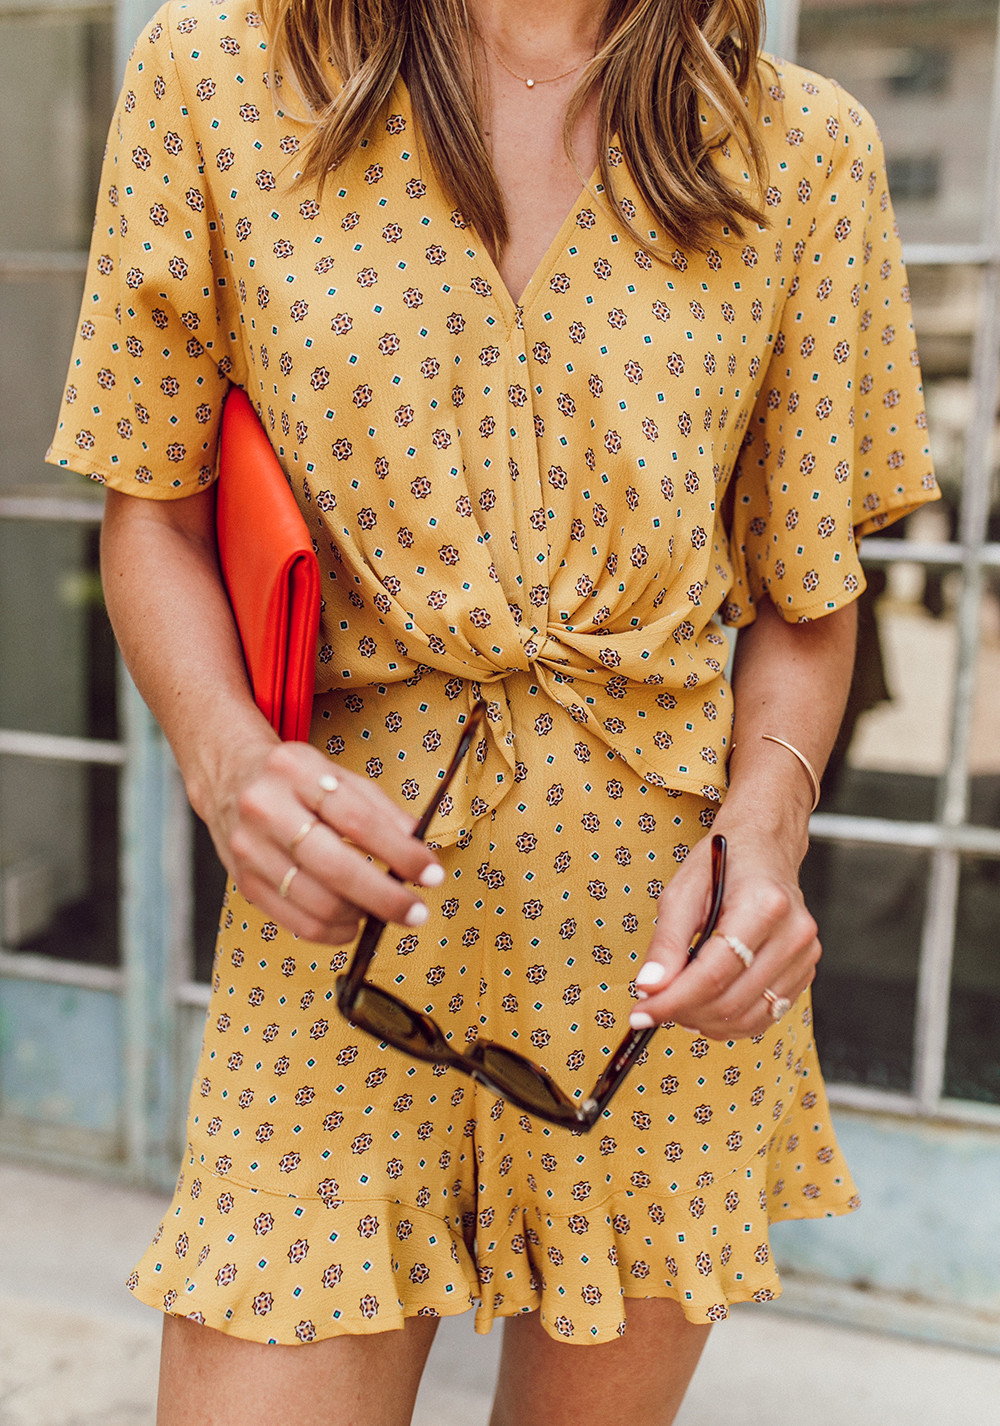 livvyland-blog-olivia-watson-austin-texas-fashion-lifestyle-blogger-river-island-floral-print-yellow-knot-front-romper-summer-occasion-outfit-idea-2